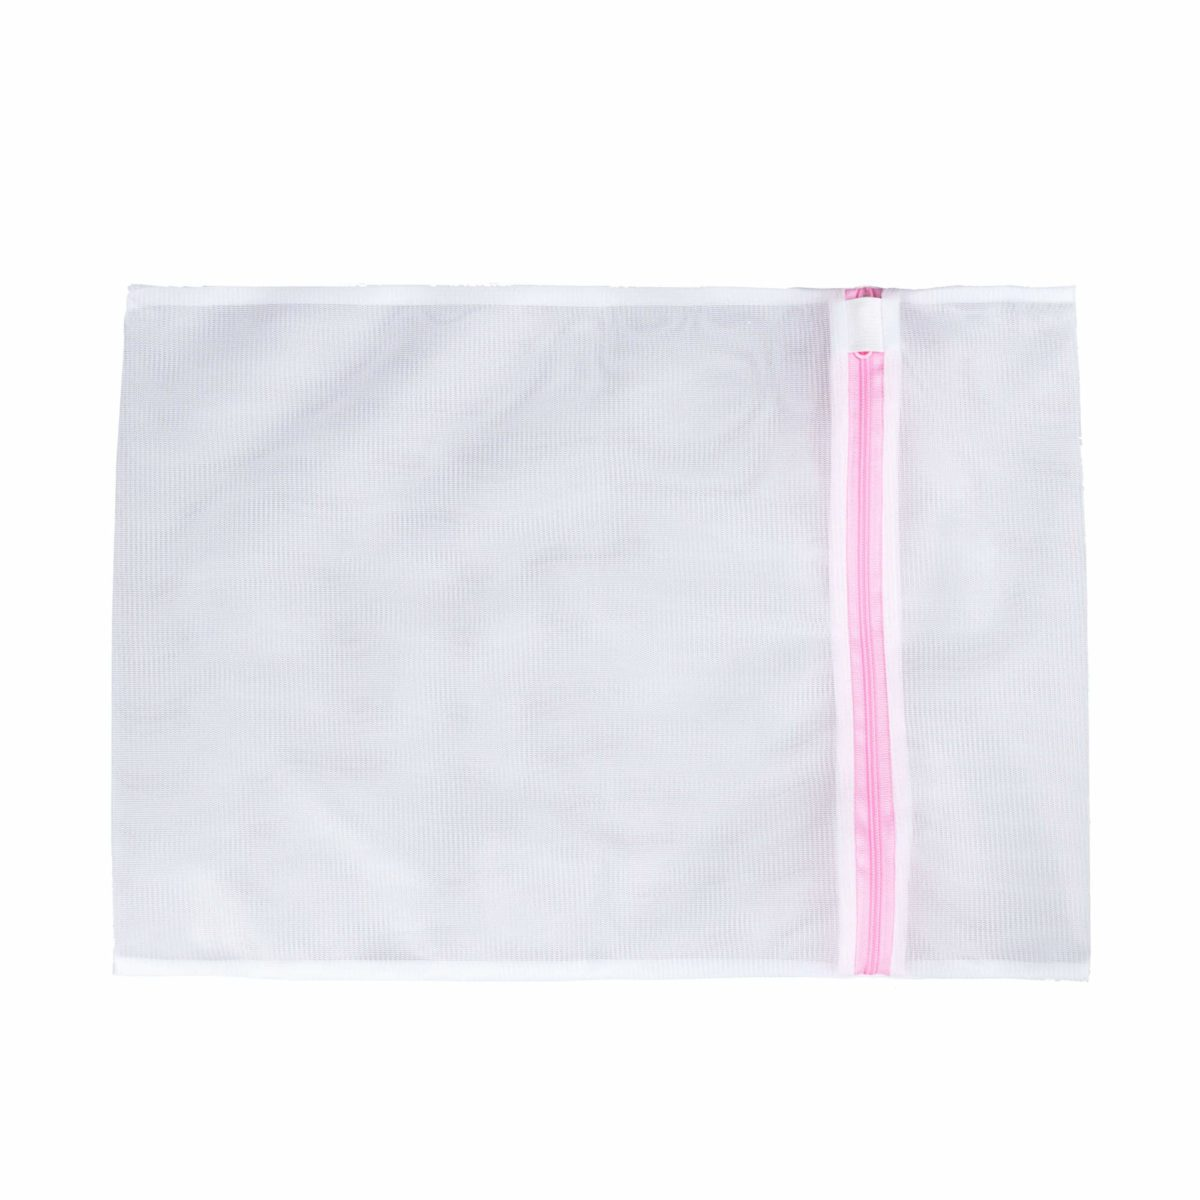 Bye Bra  washing Bag for the machine for your lingerie and delicates, reusable